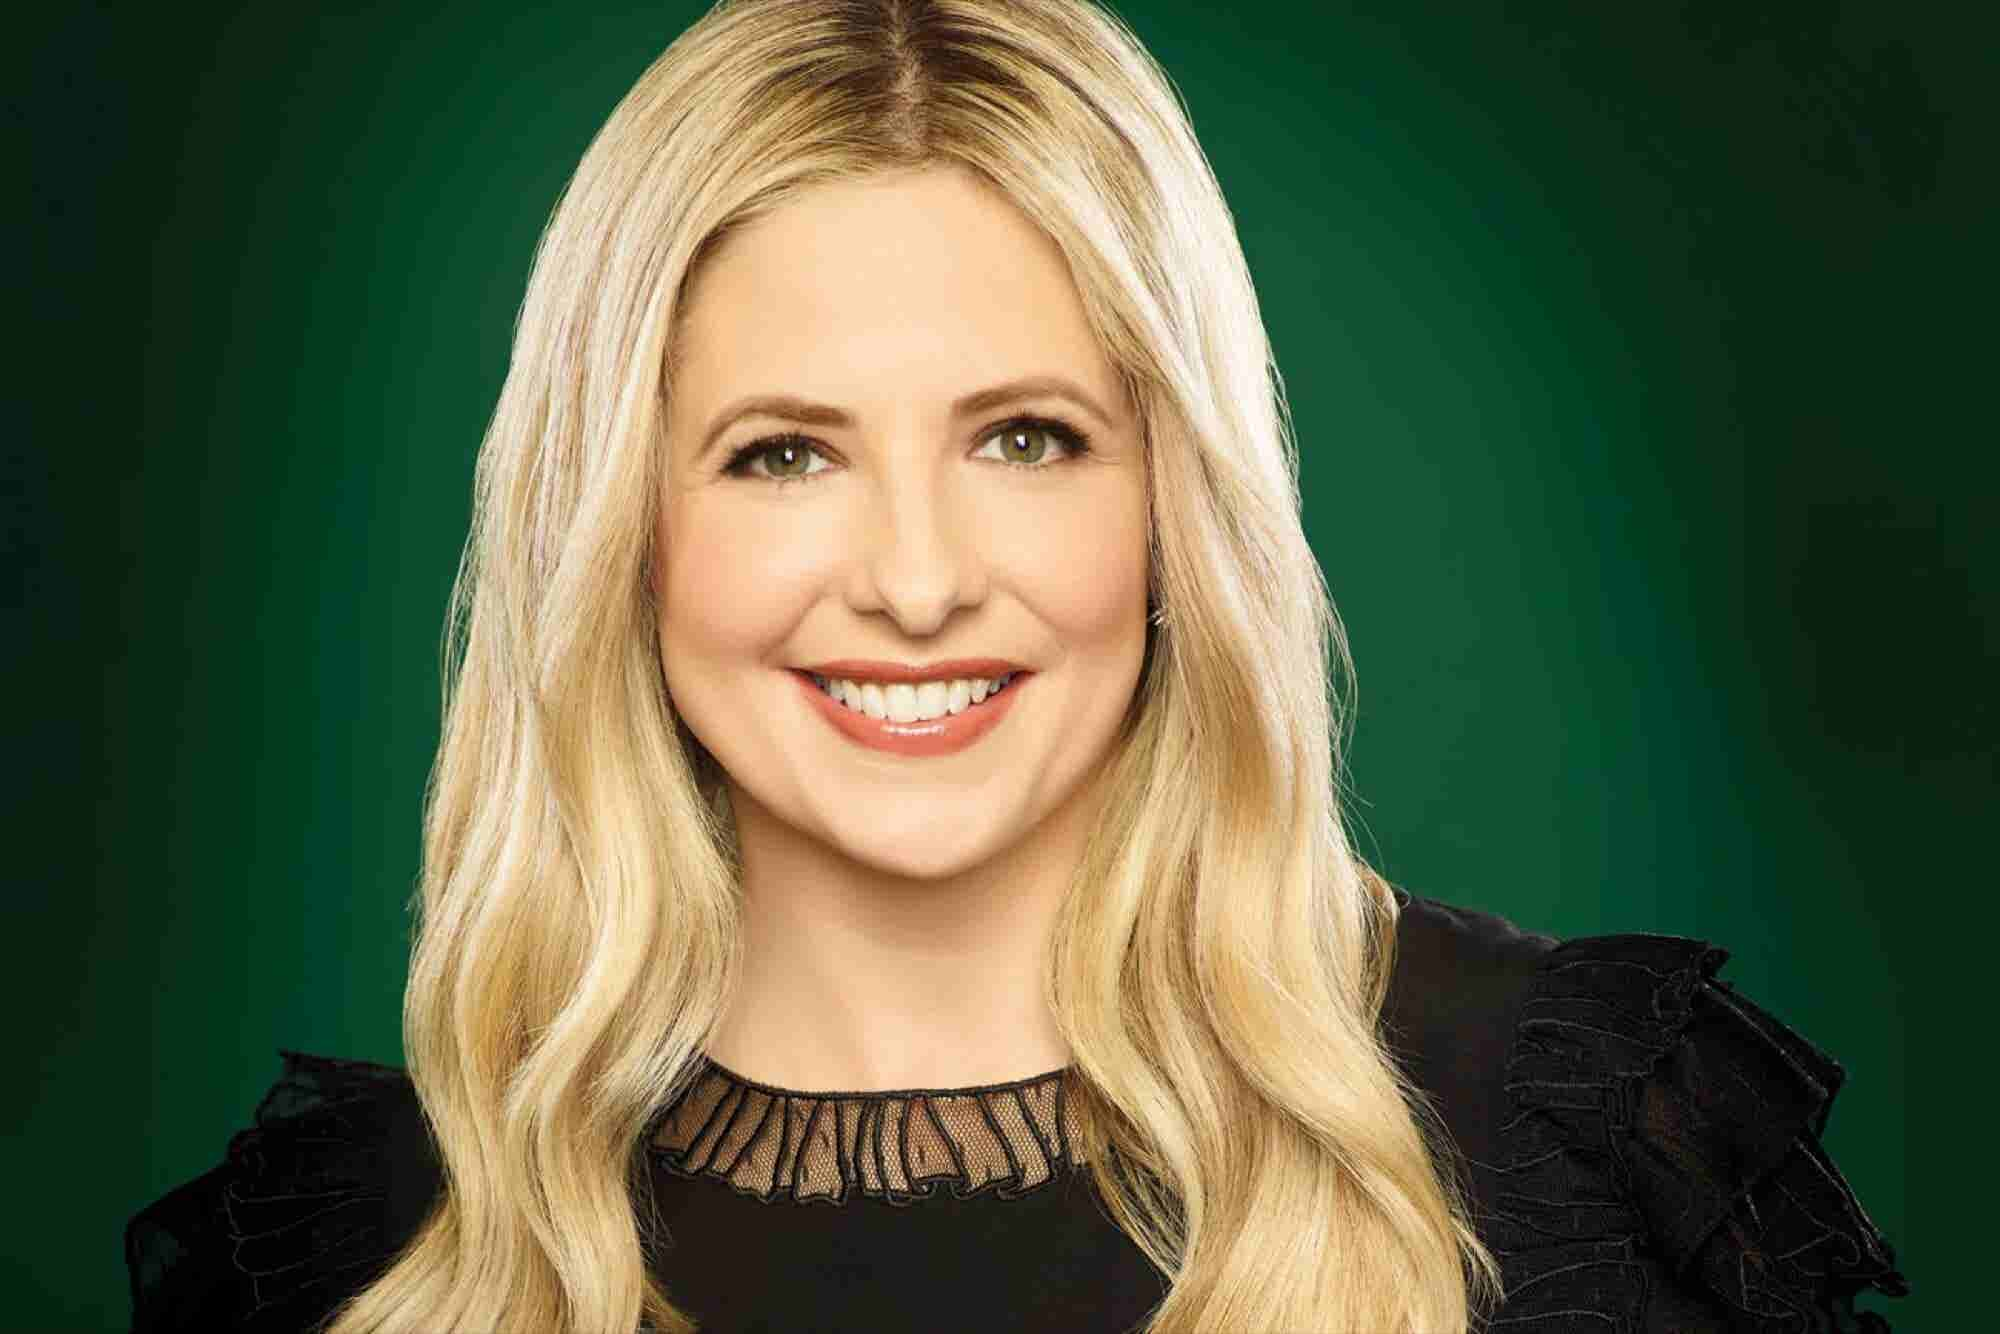 Turning Rejection Into Triumph: How Sarah Michelle Gellar and Her Co-Founders Built a New Baking Brand